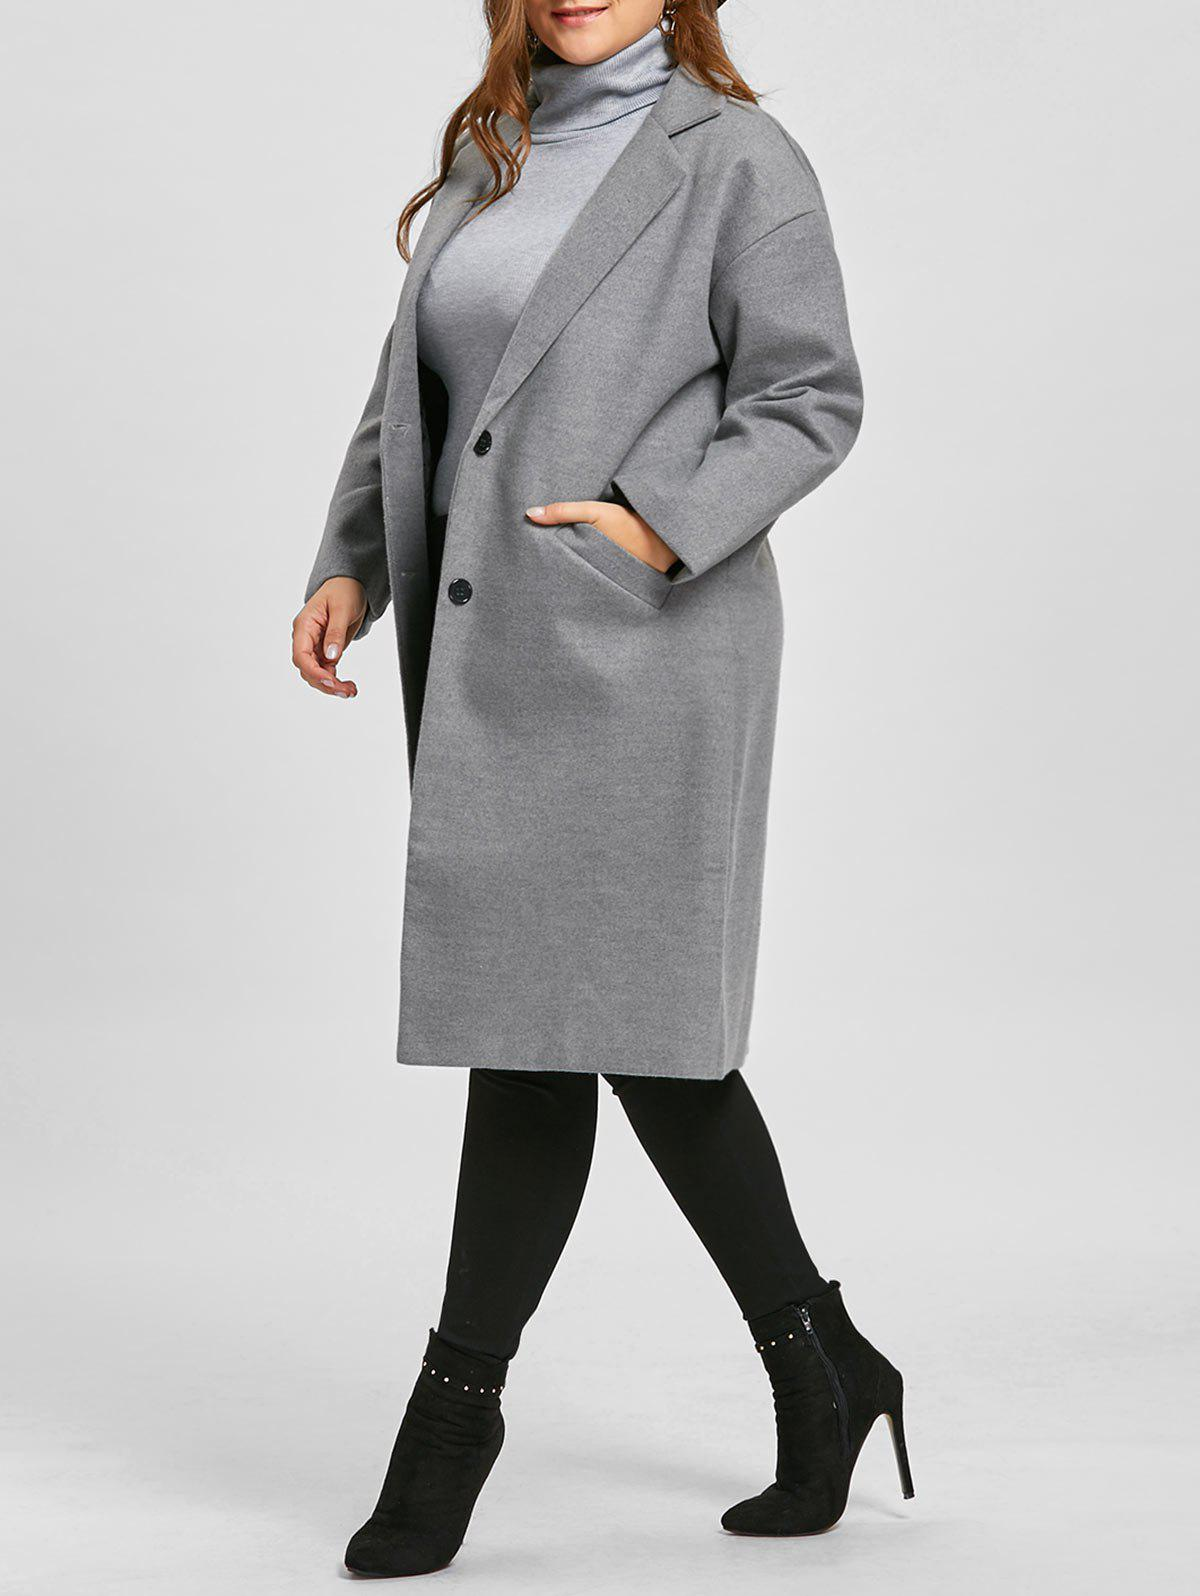 Plus Size Longline Button Up Coat - GRAY 2XL